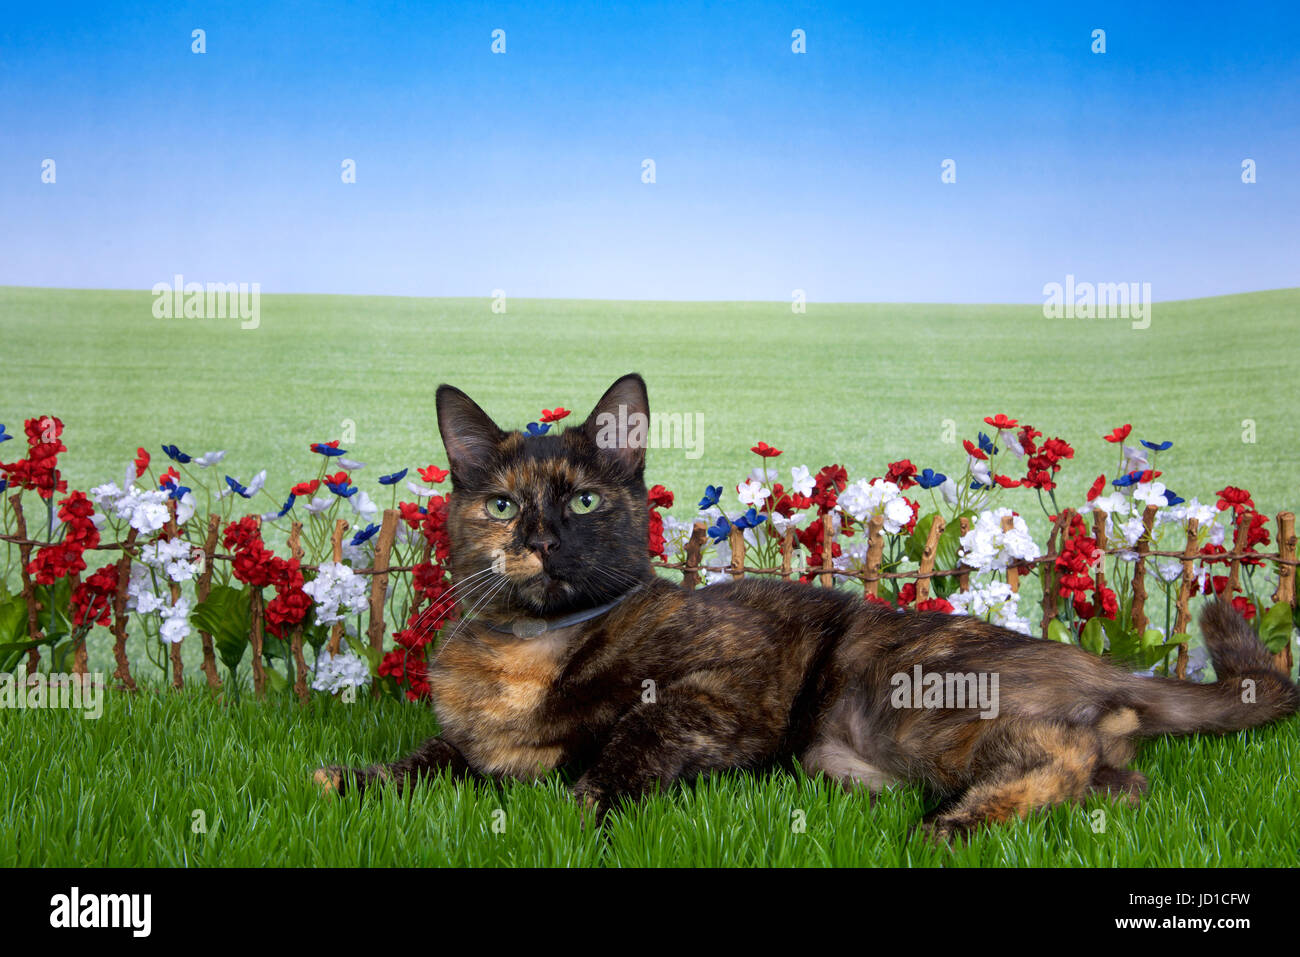 Tortie torbie tabby cat laying in green grass back yard setting, stick fence with red, white, blue flowers behind Stock Photo